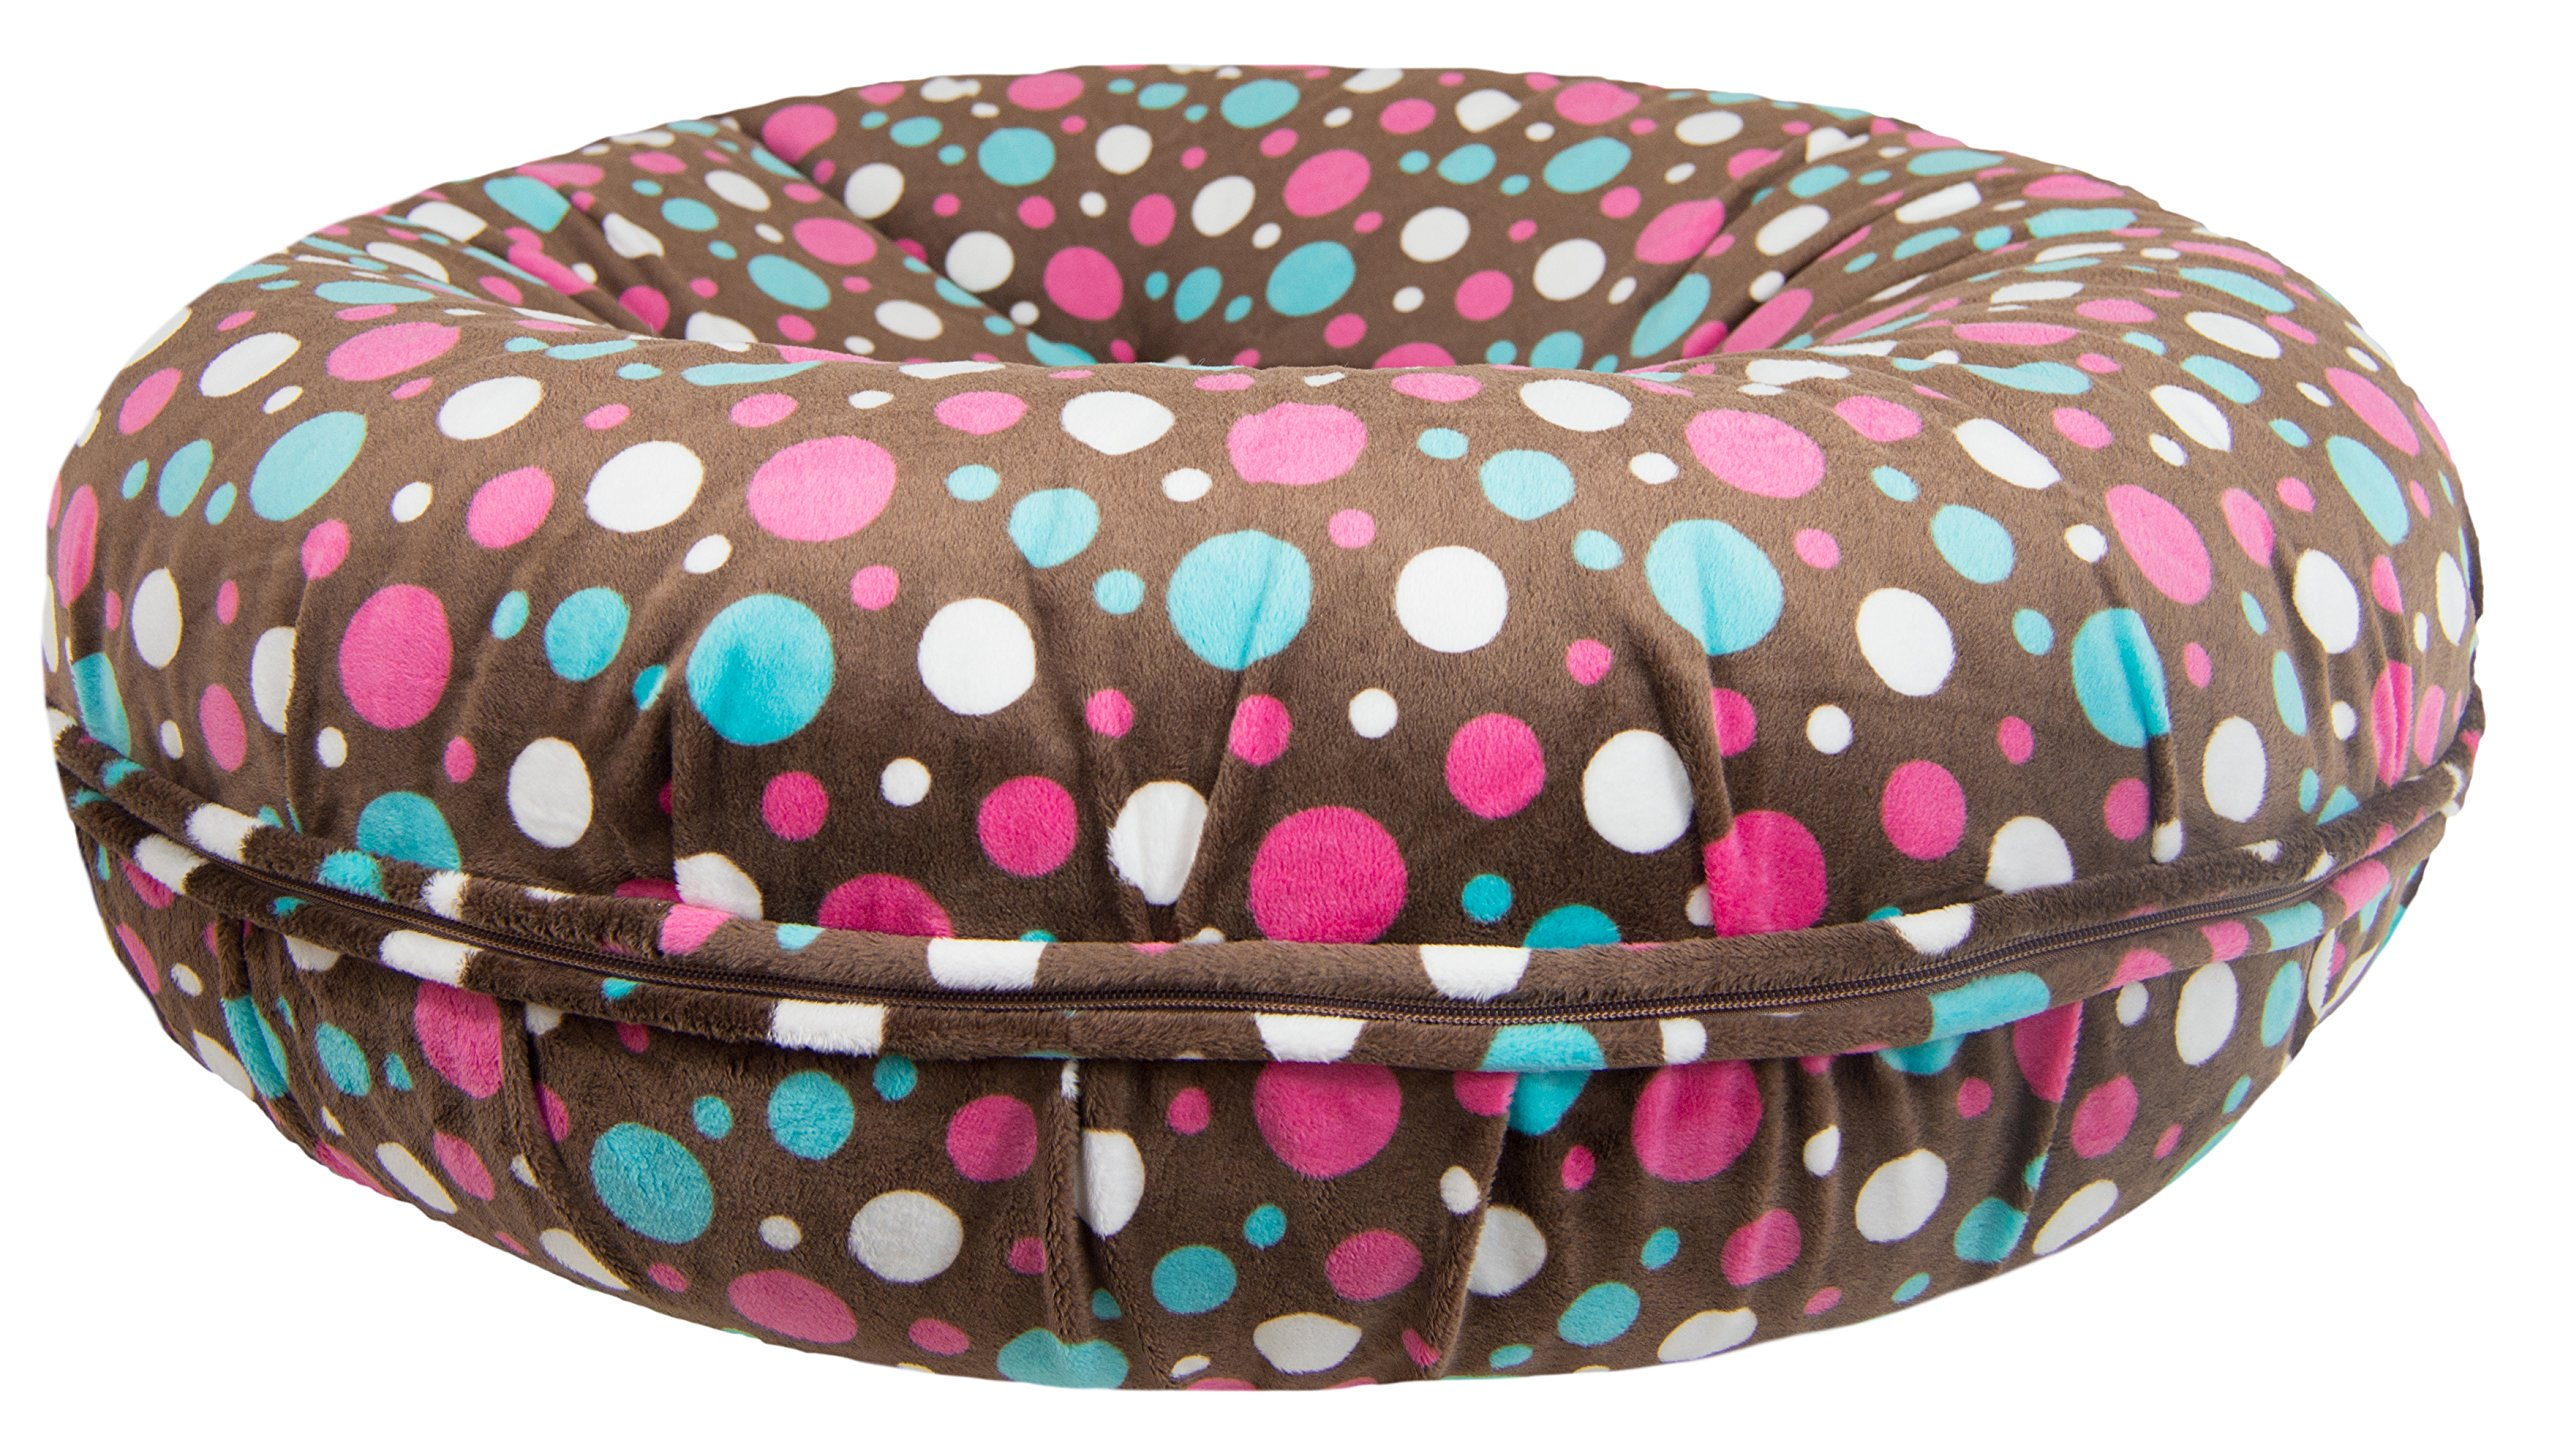 BESSIE AND BARNIE Signature Cake Pop Luxury Extra Plush Faux Fur Bagel Pet/Dog Bed (Multiple Sizes)